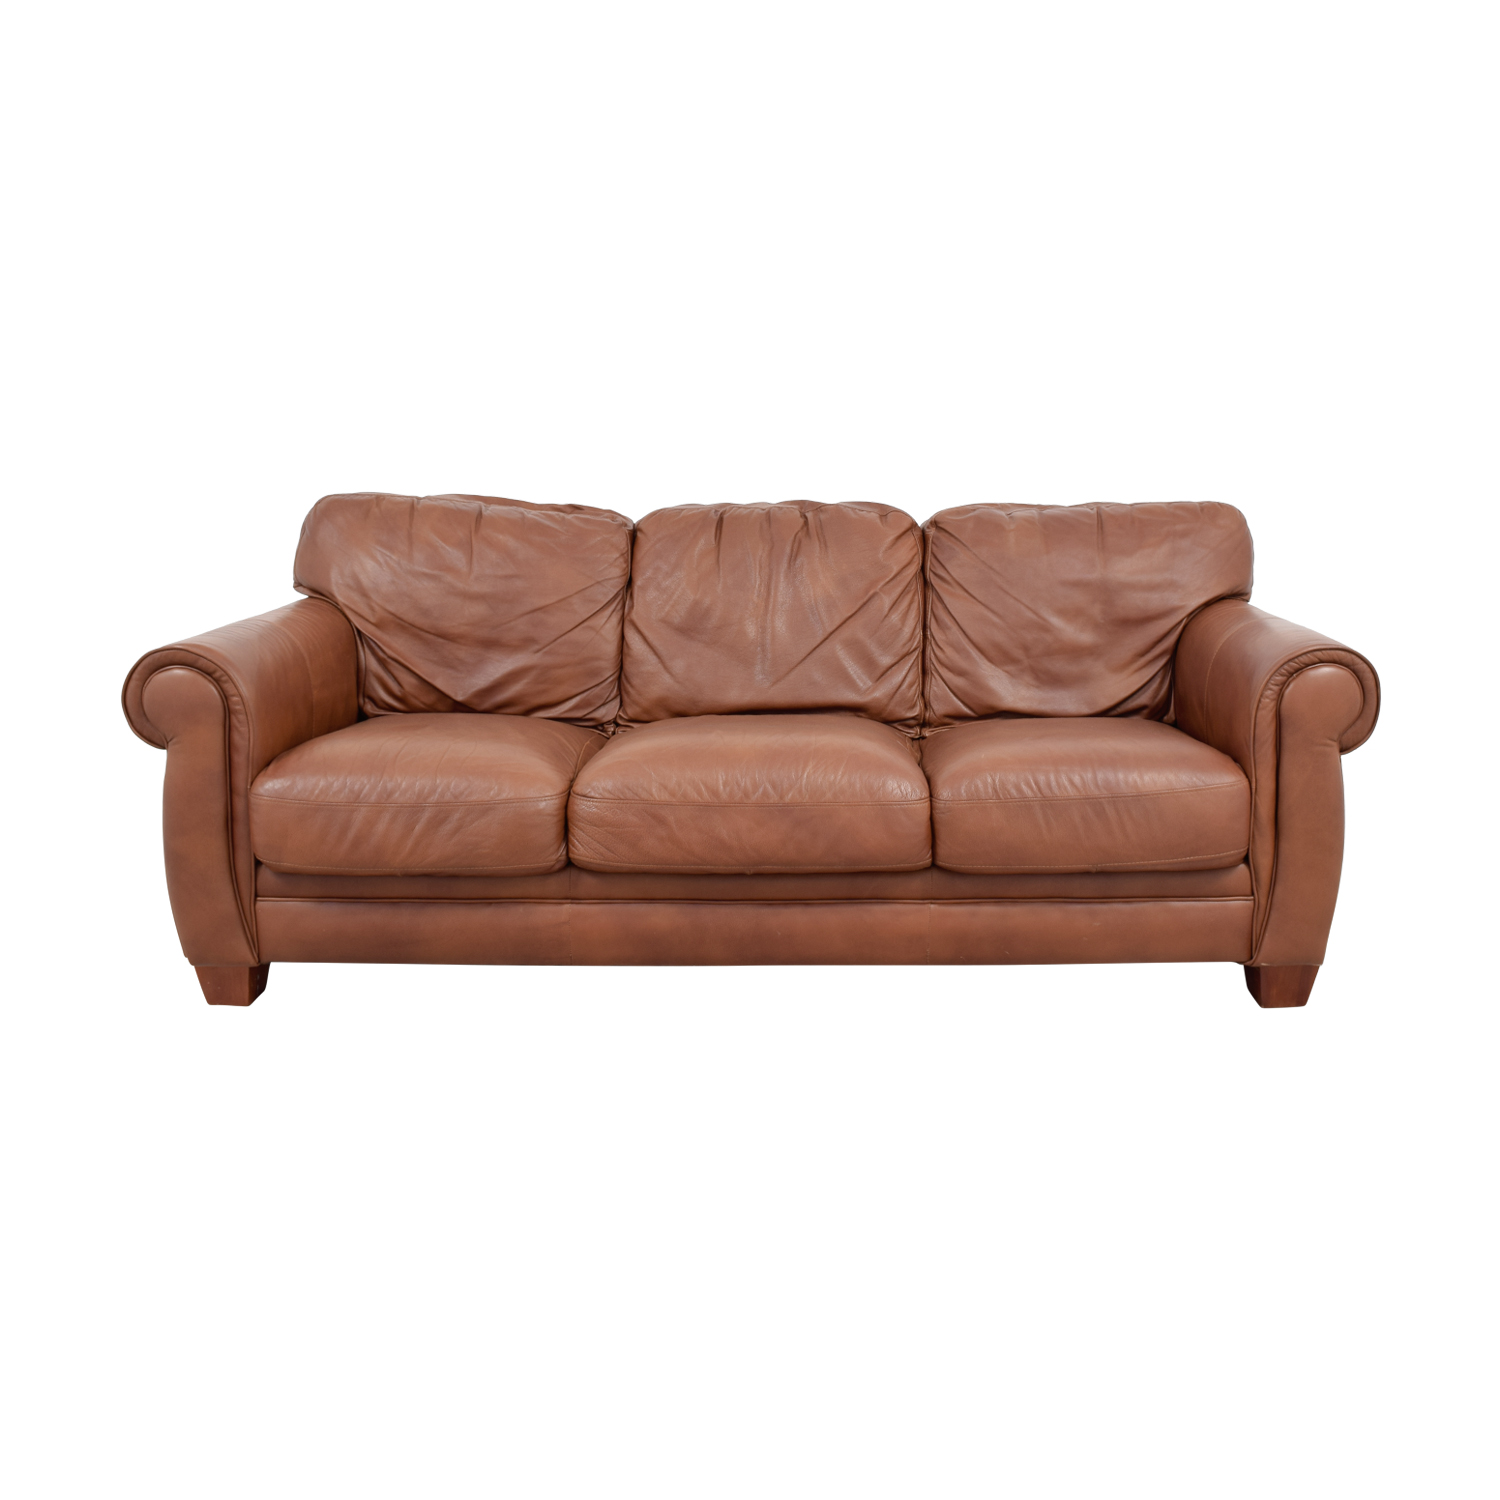 Klaussner Klaussner Brown Leather Three-Cushion Couch second hand